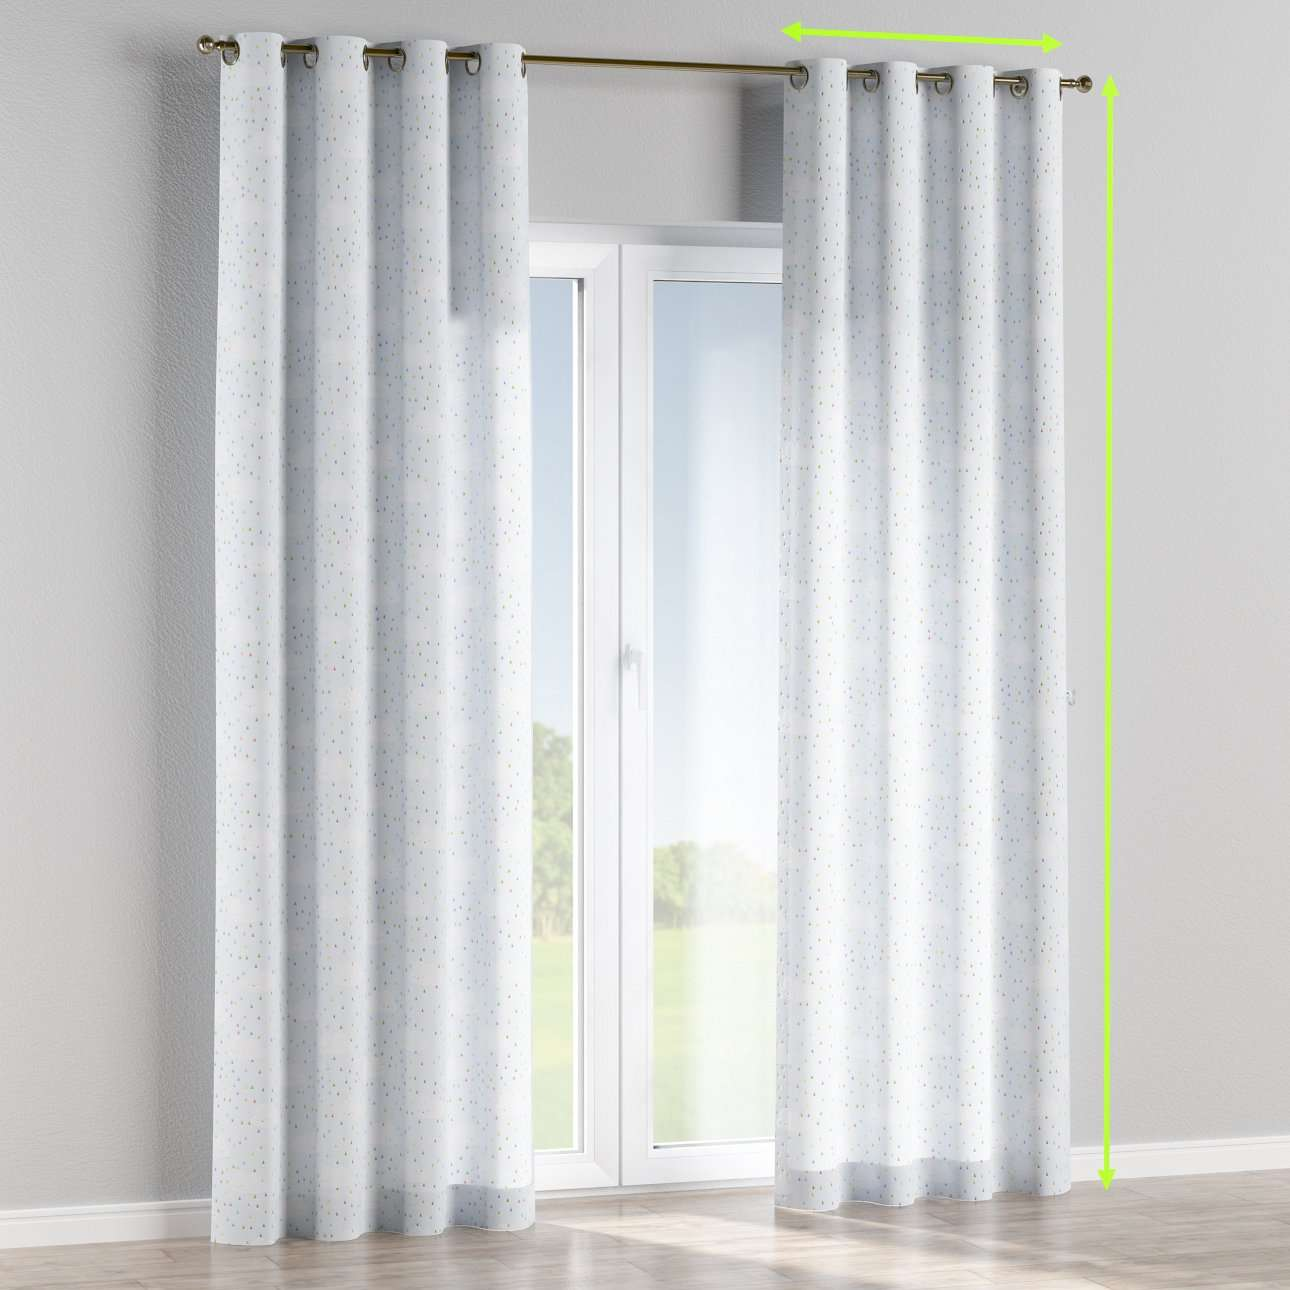 Eyelet lined curtains in collection Apanona, fabric: 151-03